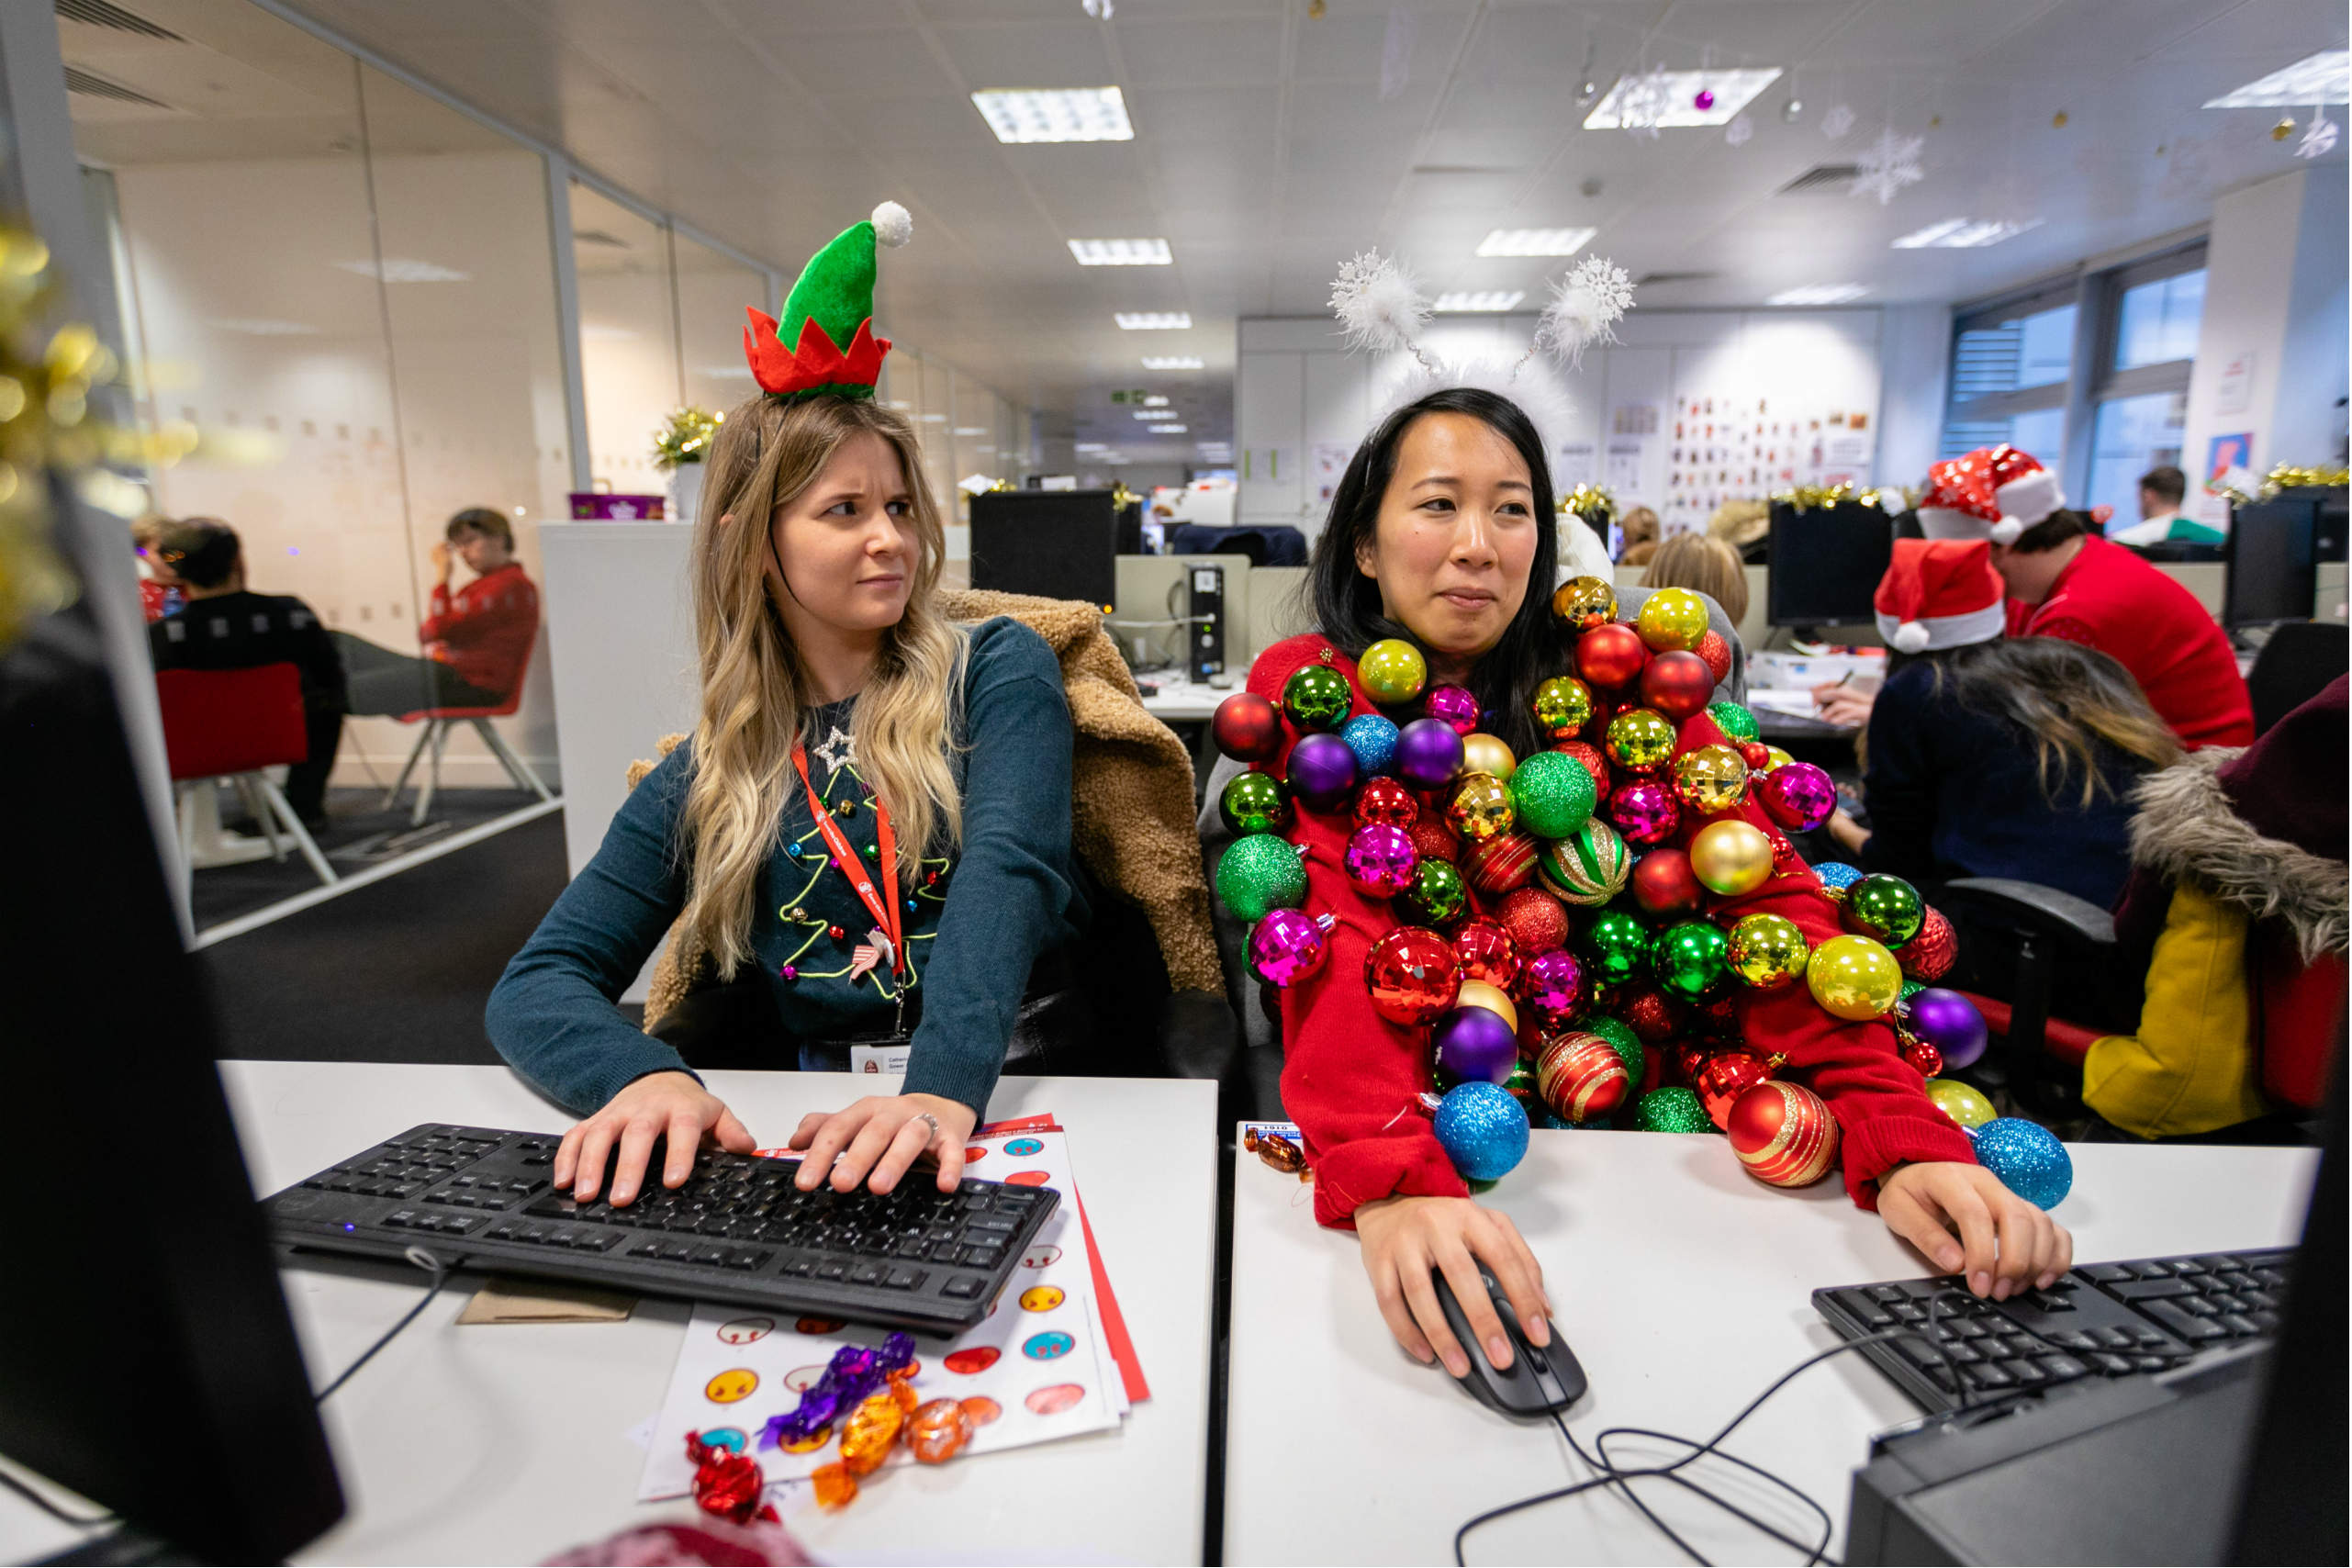 Office workers on their computers in silly jumpers